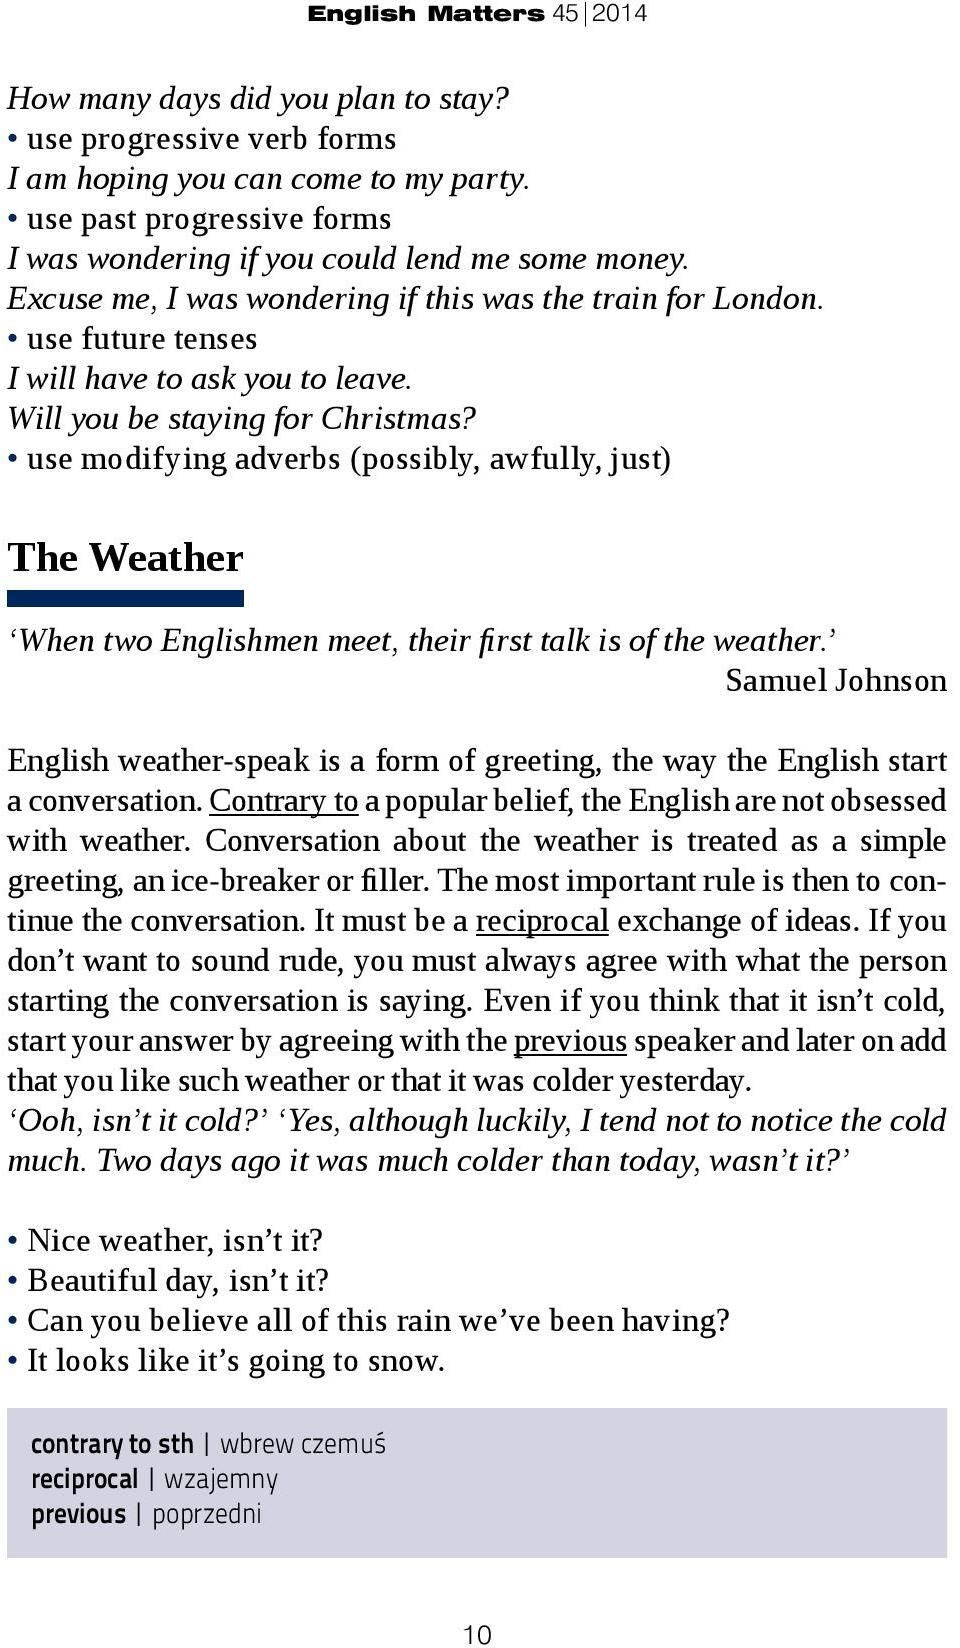 use modifying adverbs (possibly, awfully, just) The Weather When two Englishmen meet, their first talk is of the weather.